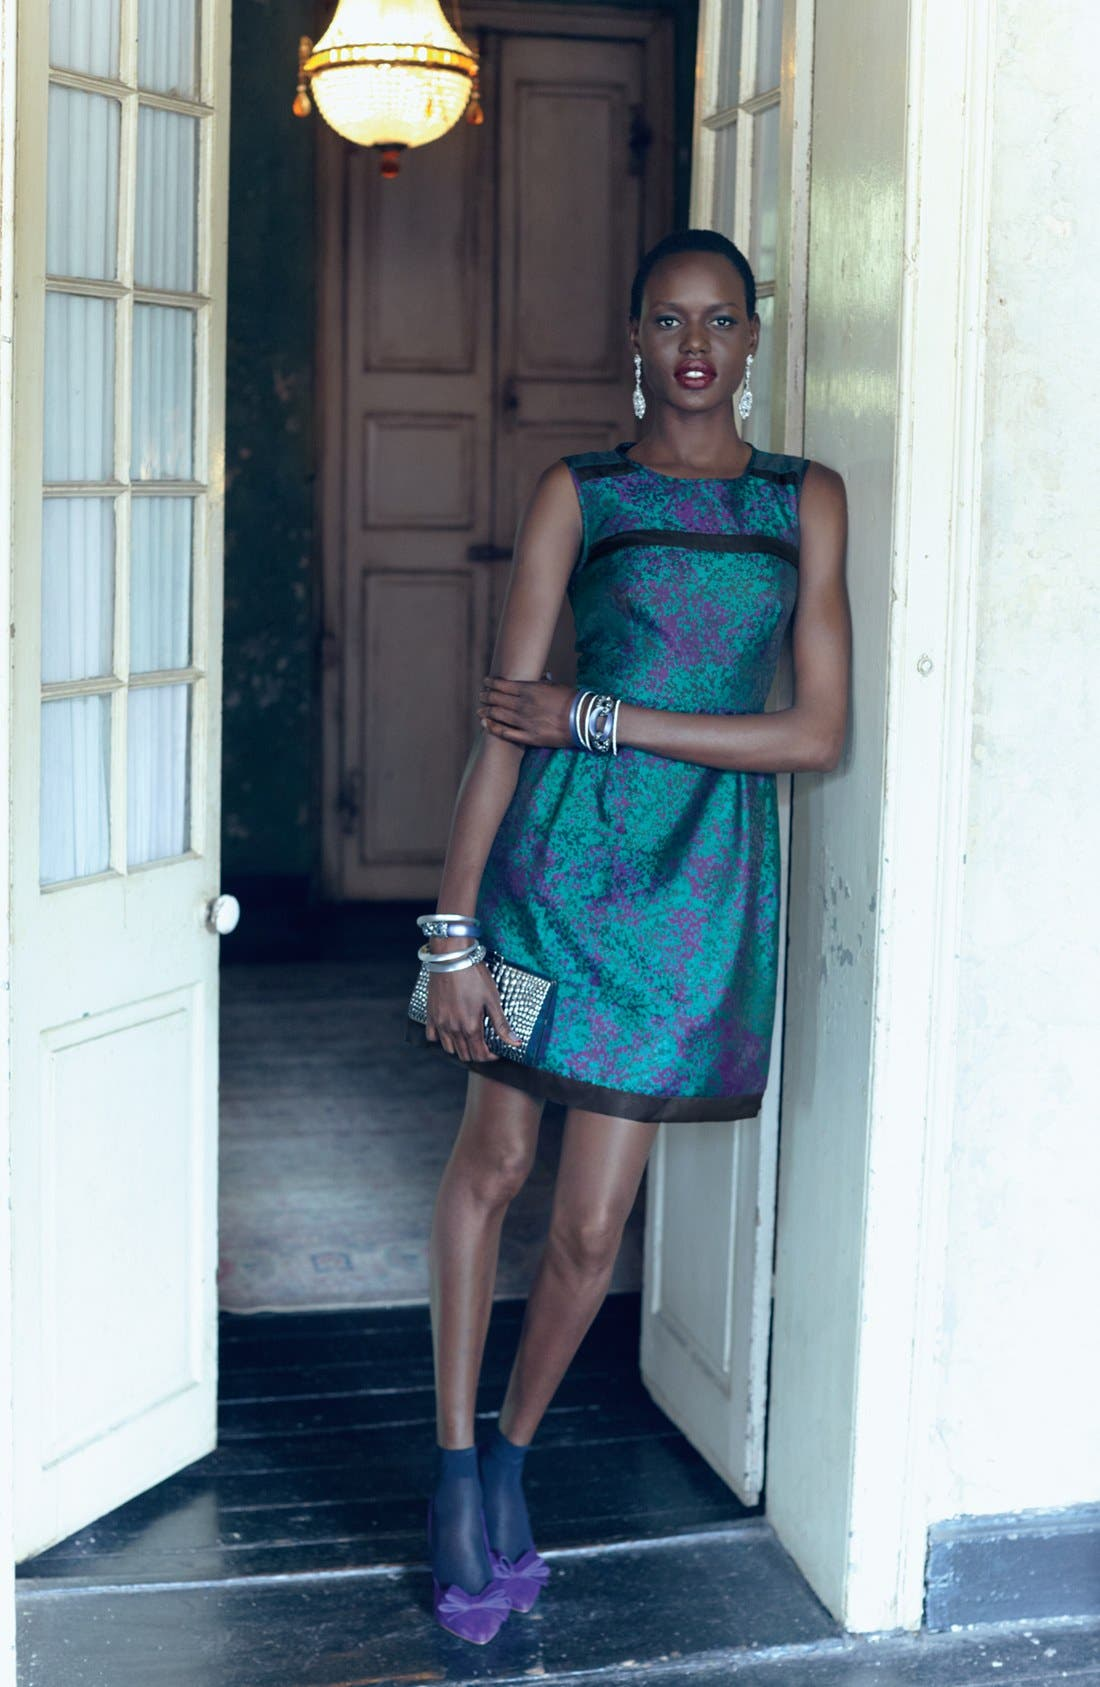 Main Image - Ivy & Blu for Maggy Boutique Brocade Dress & Accessories